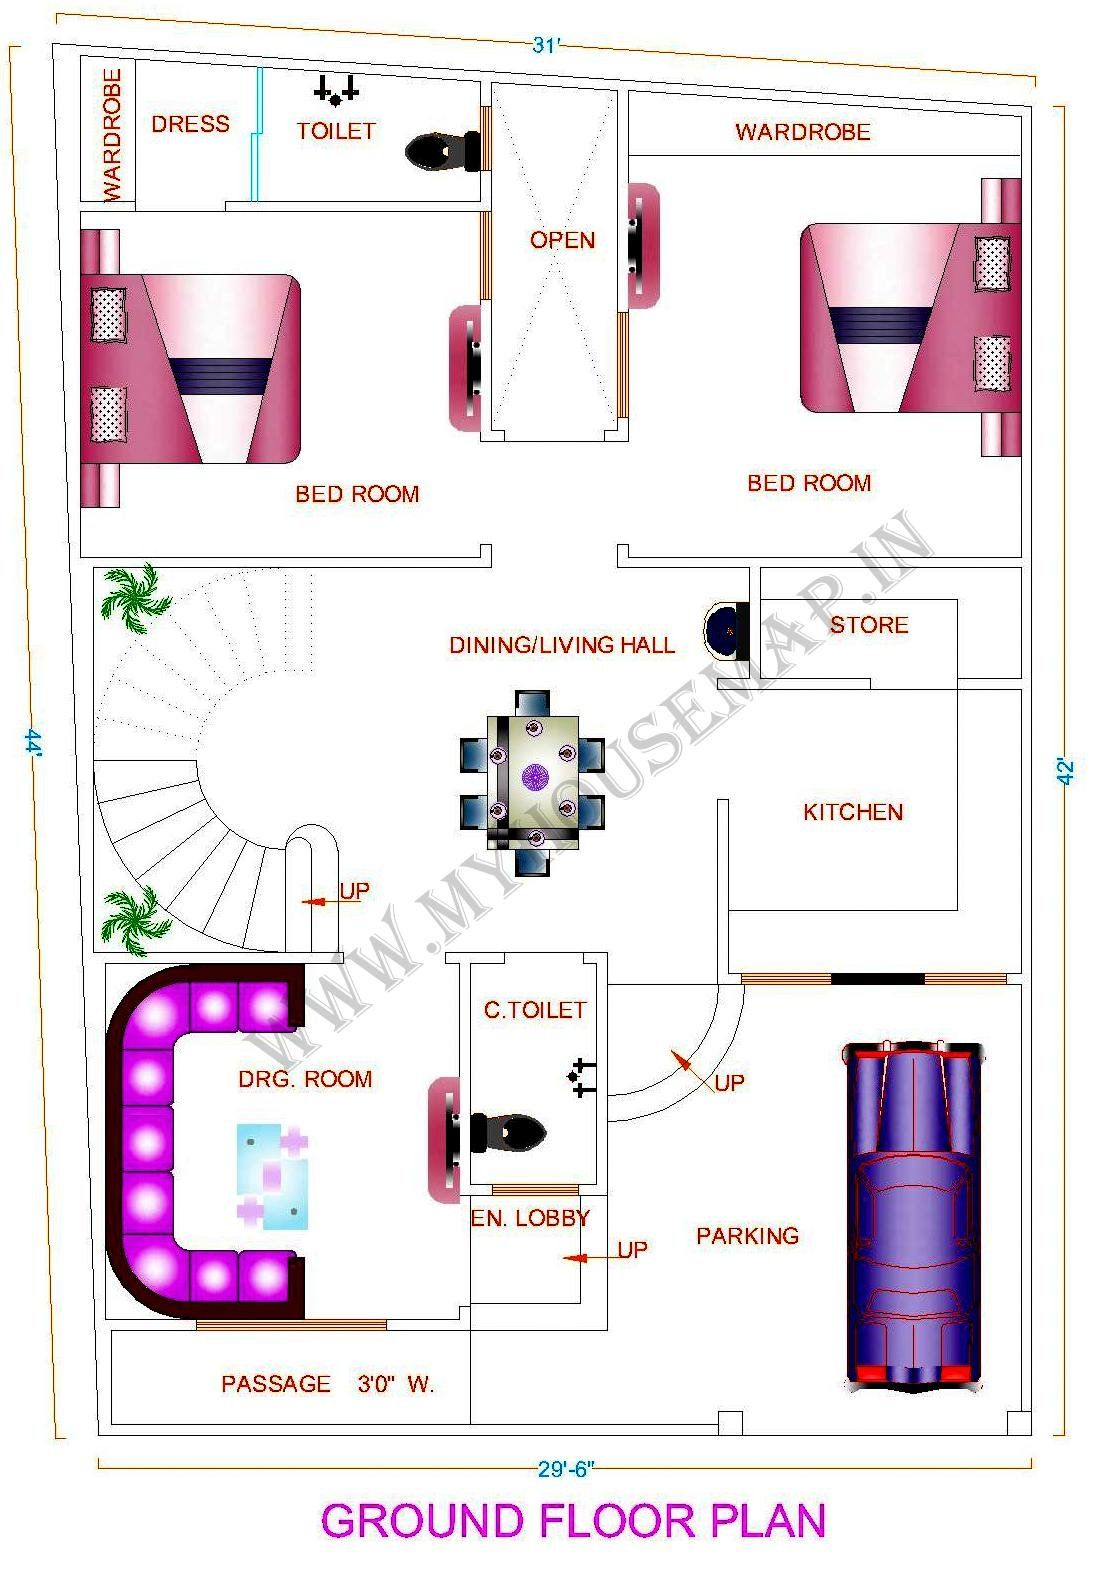 House Map Front Elevation Design House Map Building Design House Designs House Plans House Map House Plans 30x40 House Plans